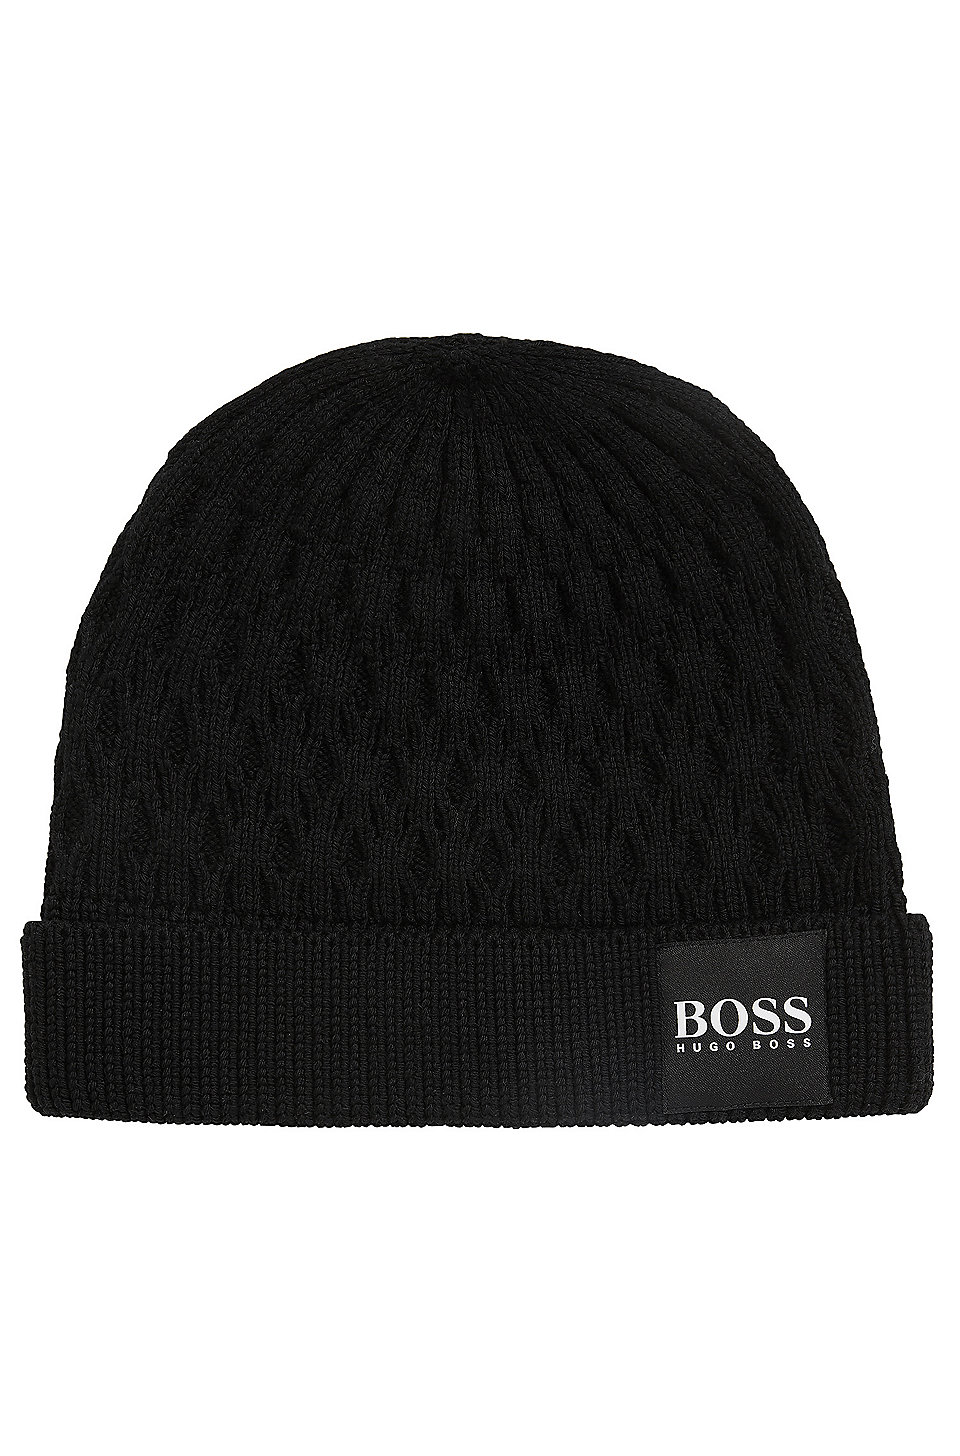 d99a1772d76c9 BOSS - Knitted beanie hat in structured virgin wool